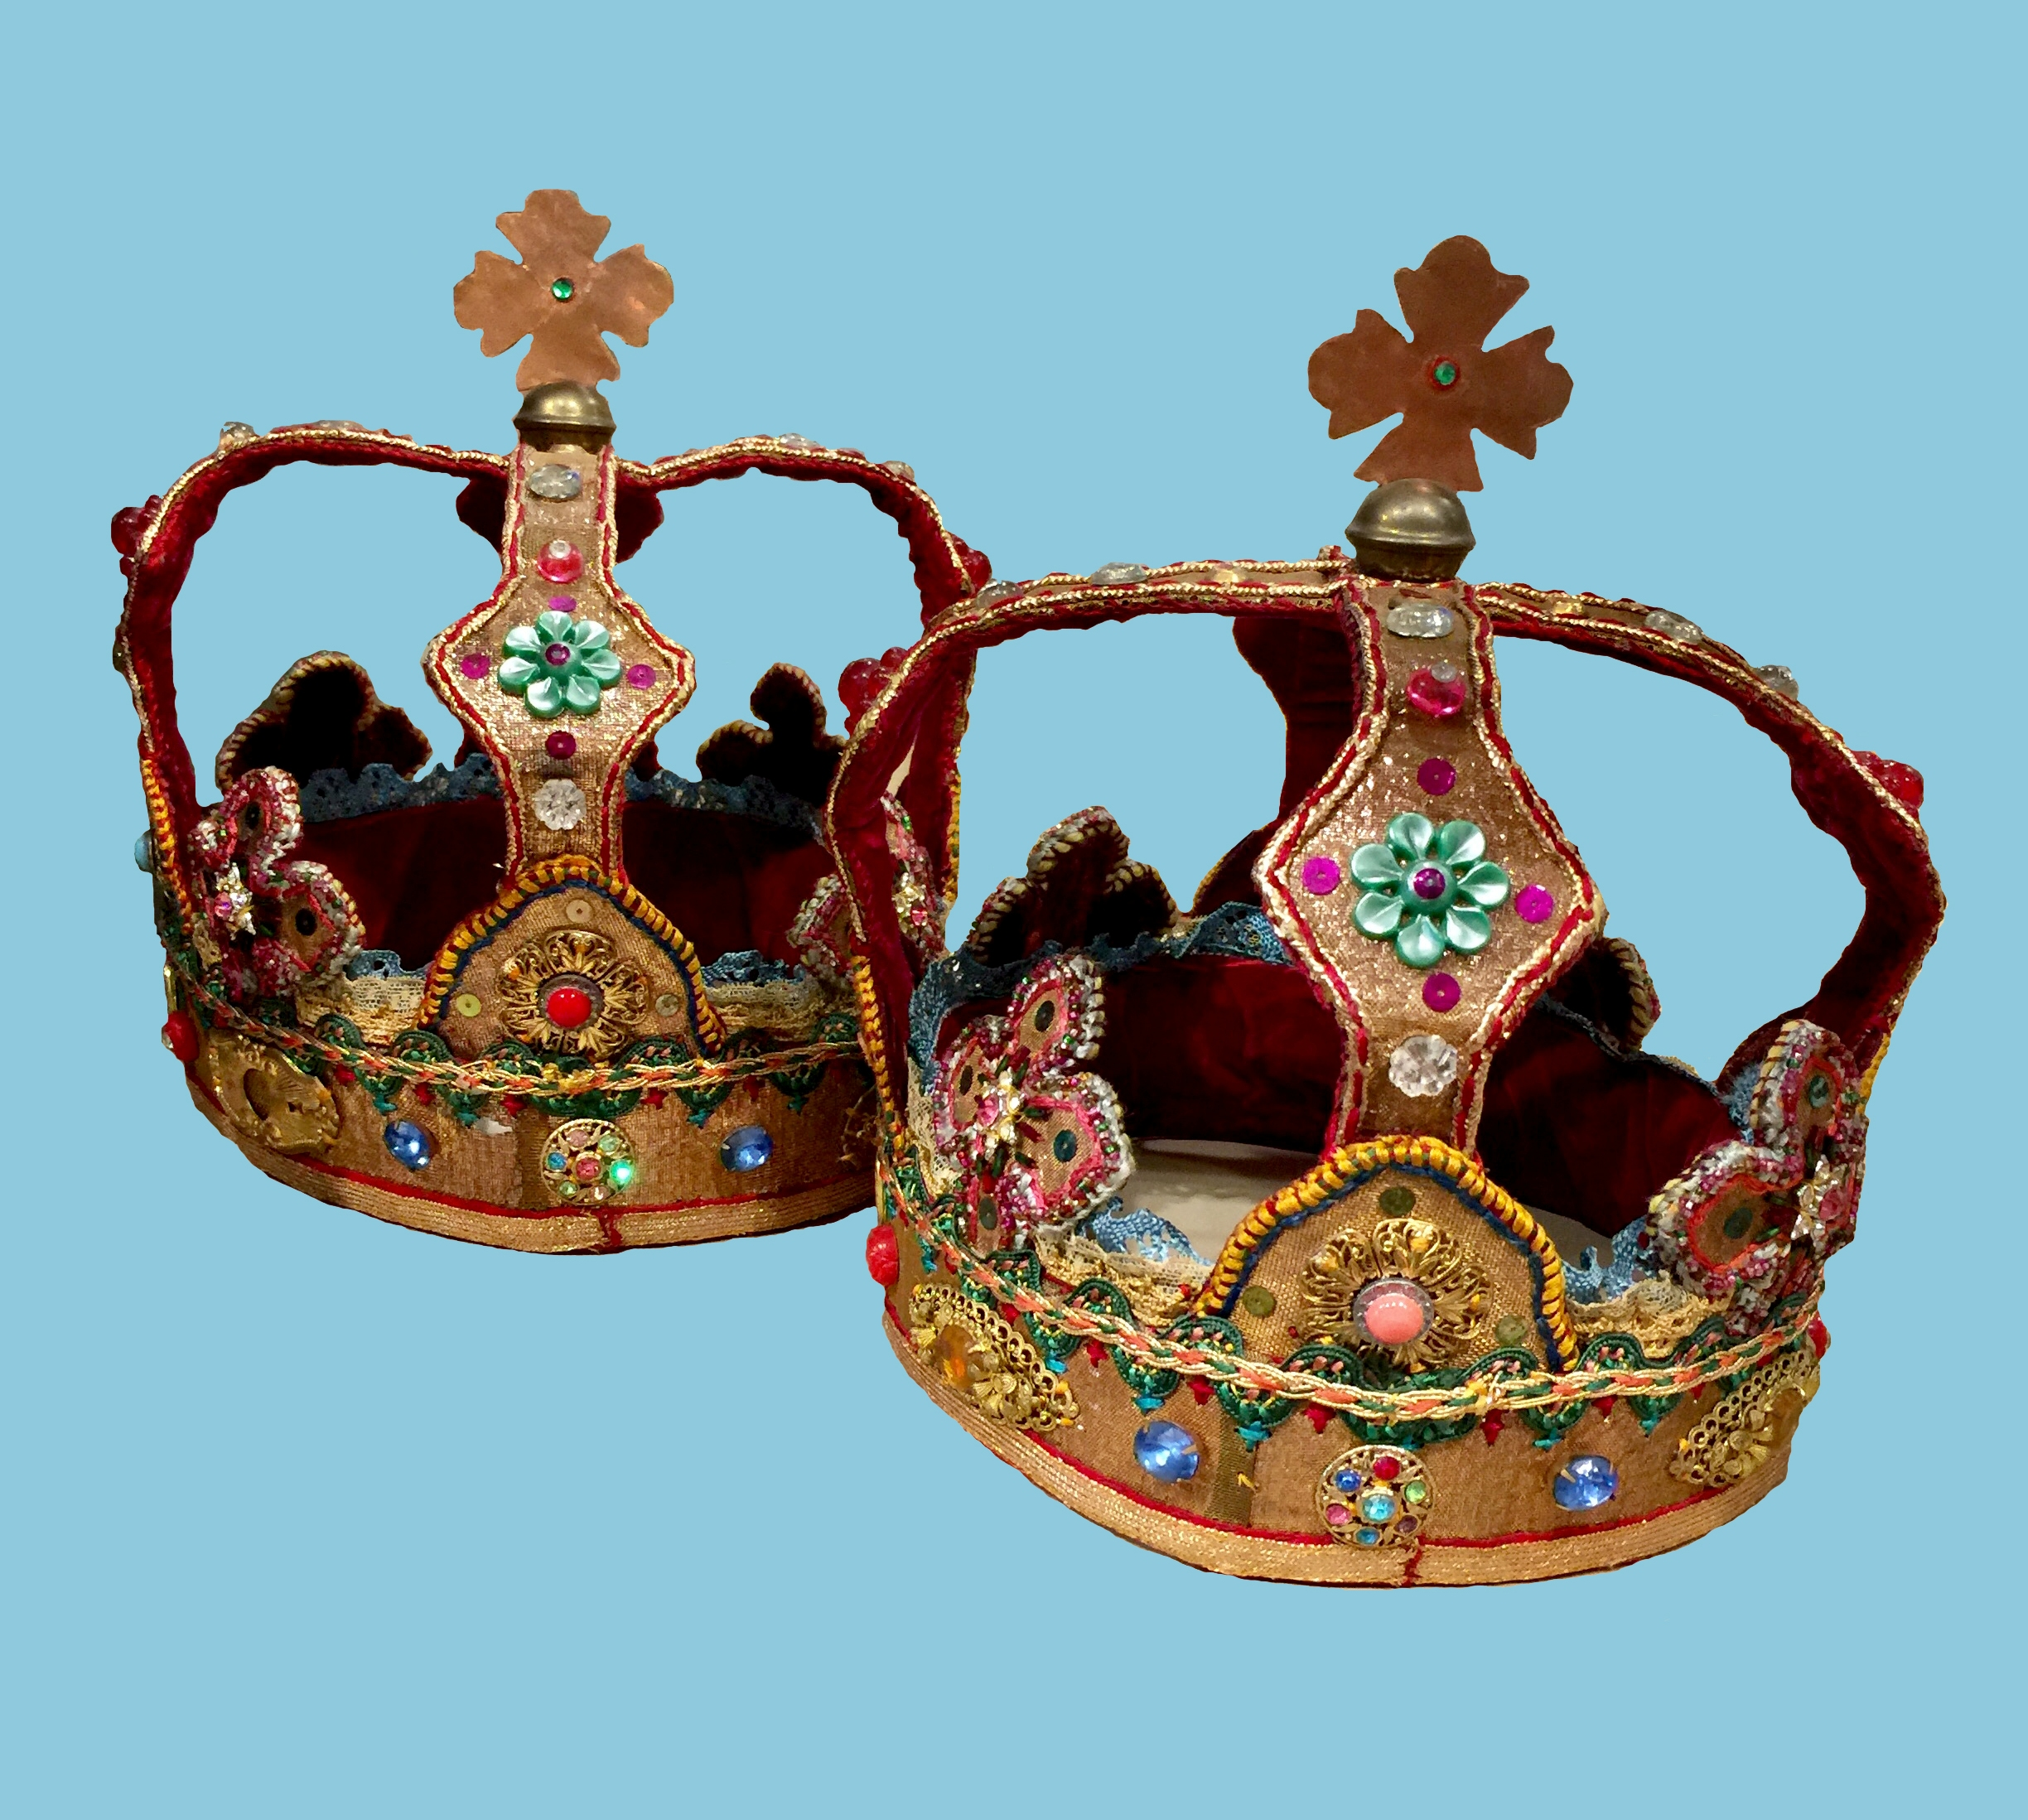 Wedding Crowns Вінчальні Корони - Crowns are used in the Orthodox wedding service to symbolize the couple's relationship to one another as King and Queen of their kingdom: their home.